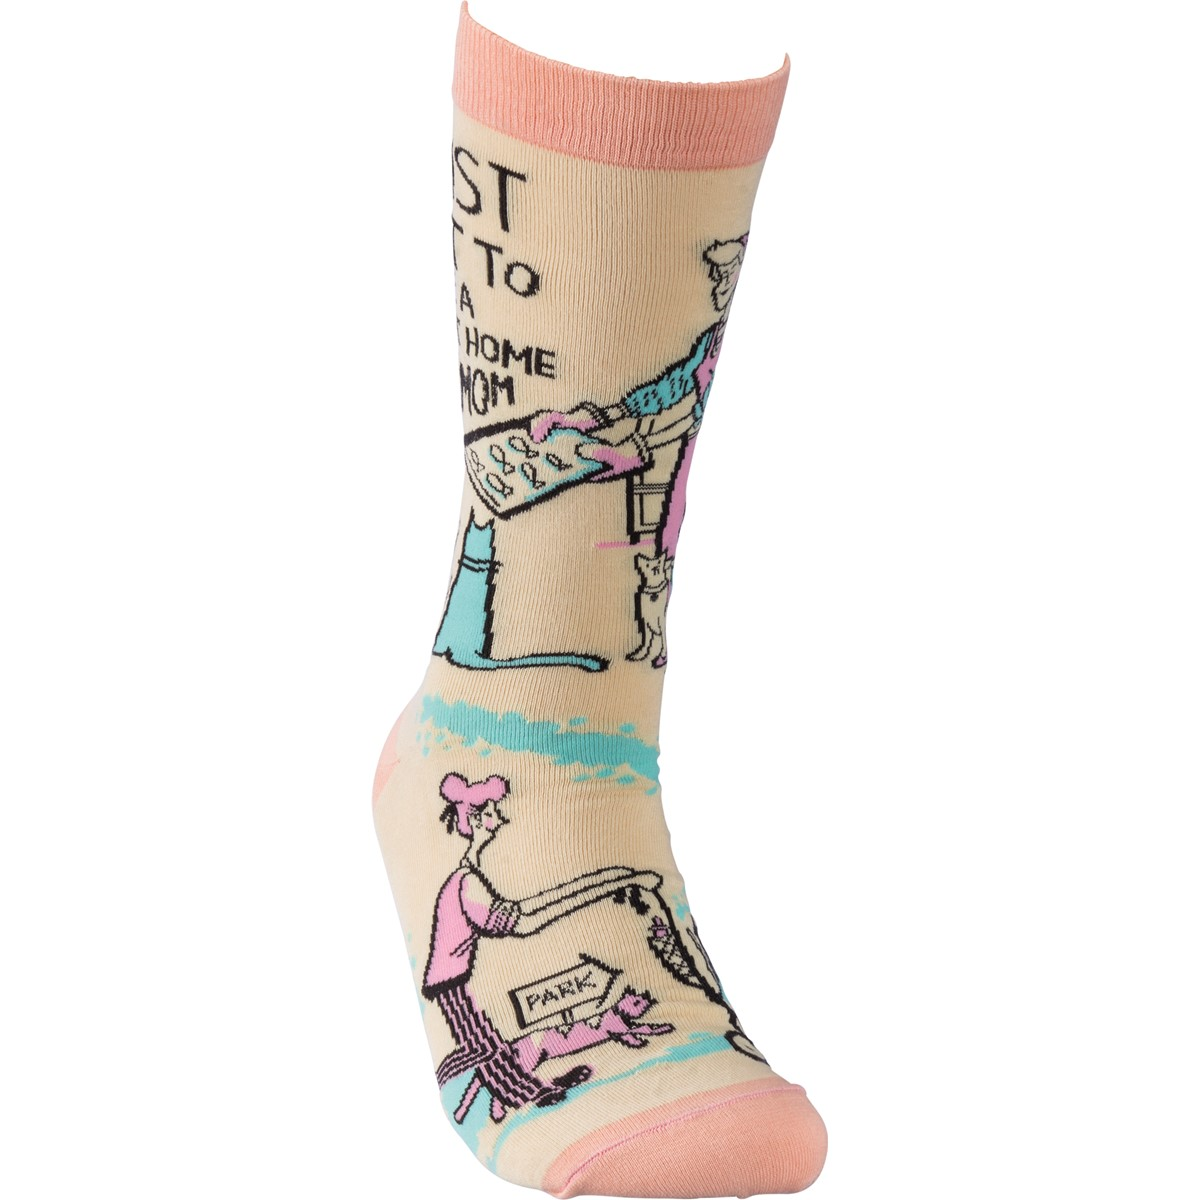 Socks - Be A Stay At Home Cat Mom - One Size Fits Most - Cotton, Nylon, Spandex